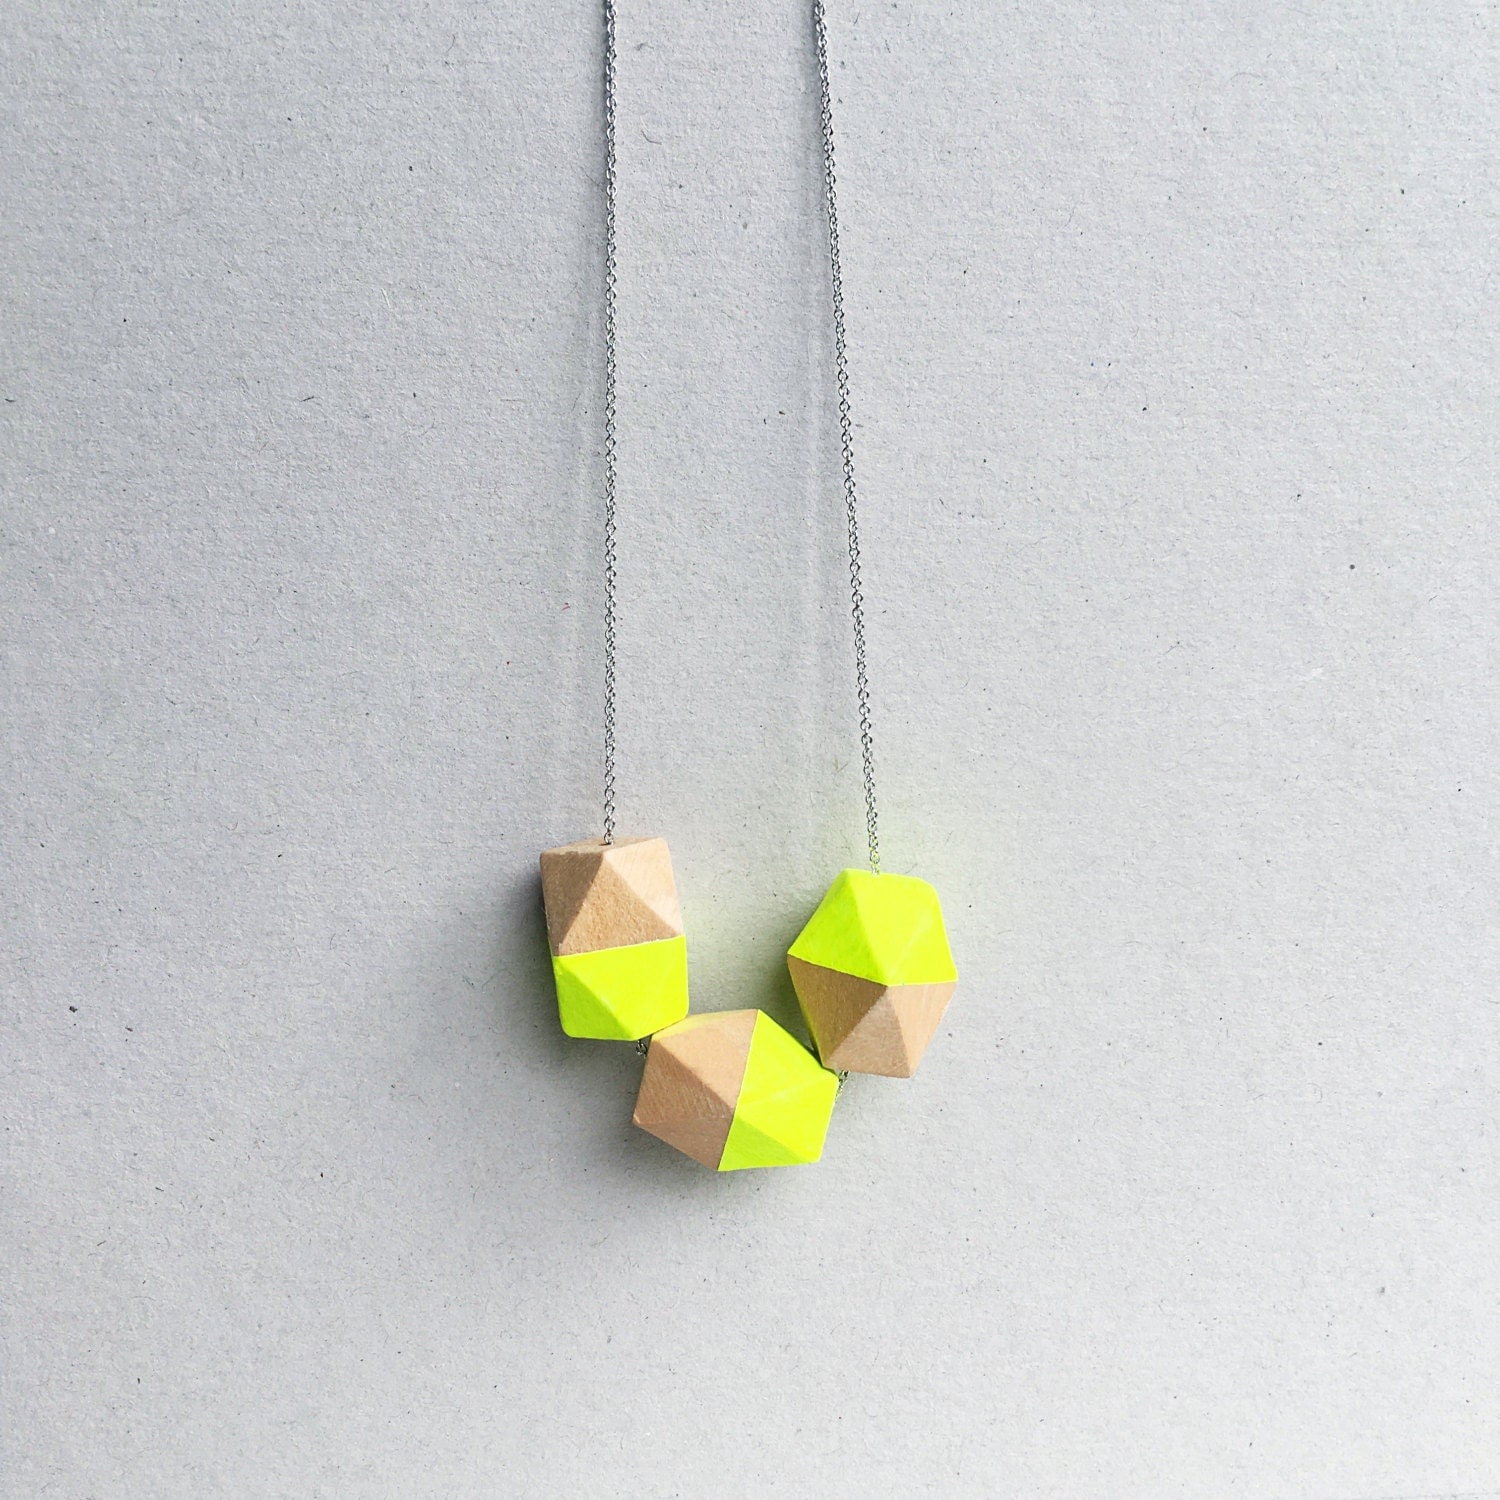 Neon yellow necklace